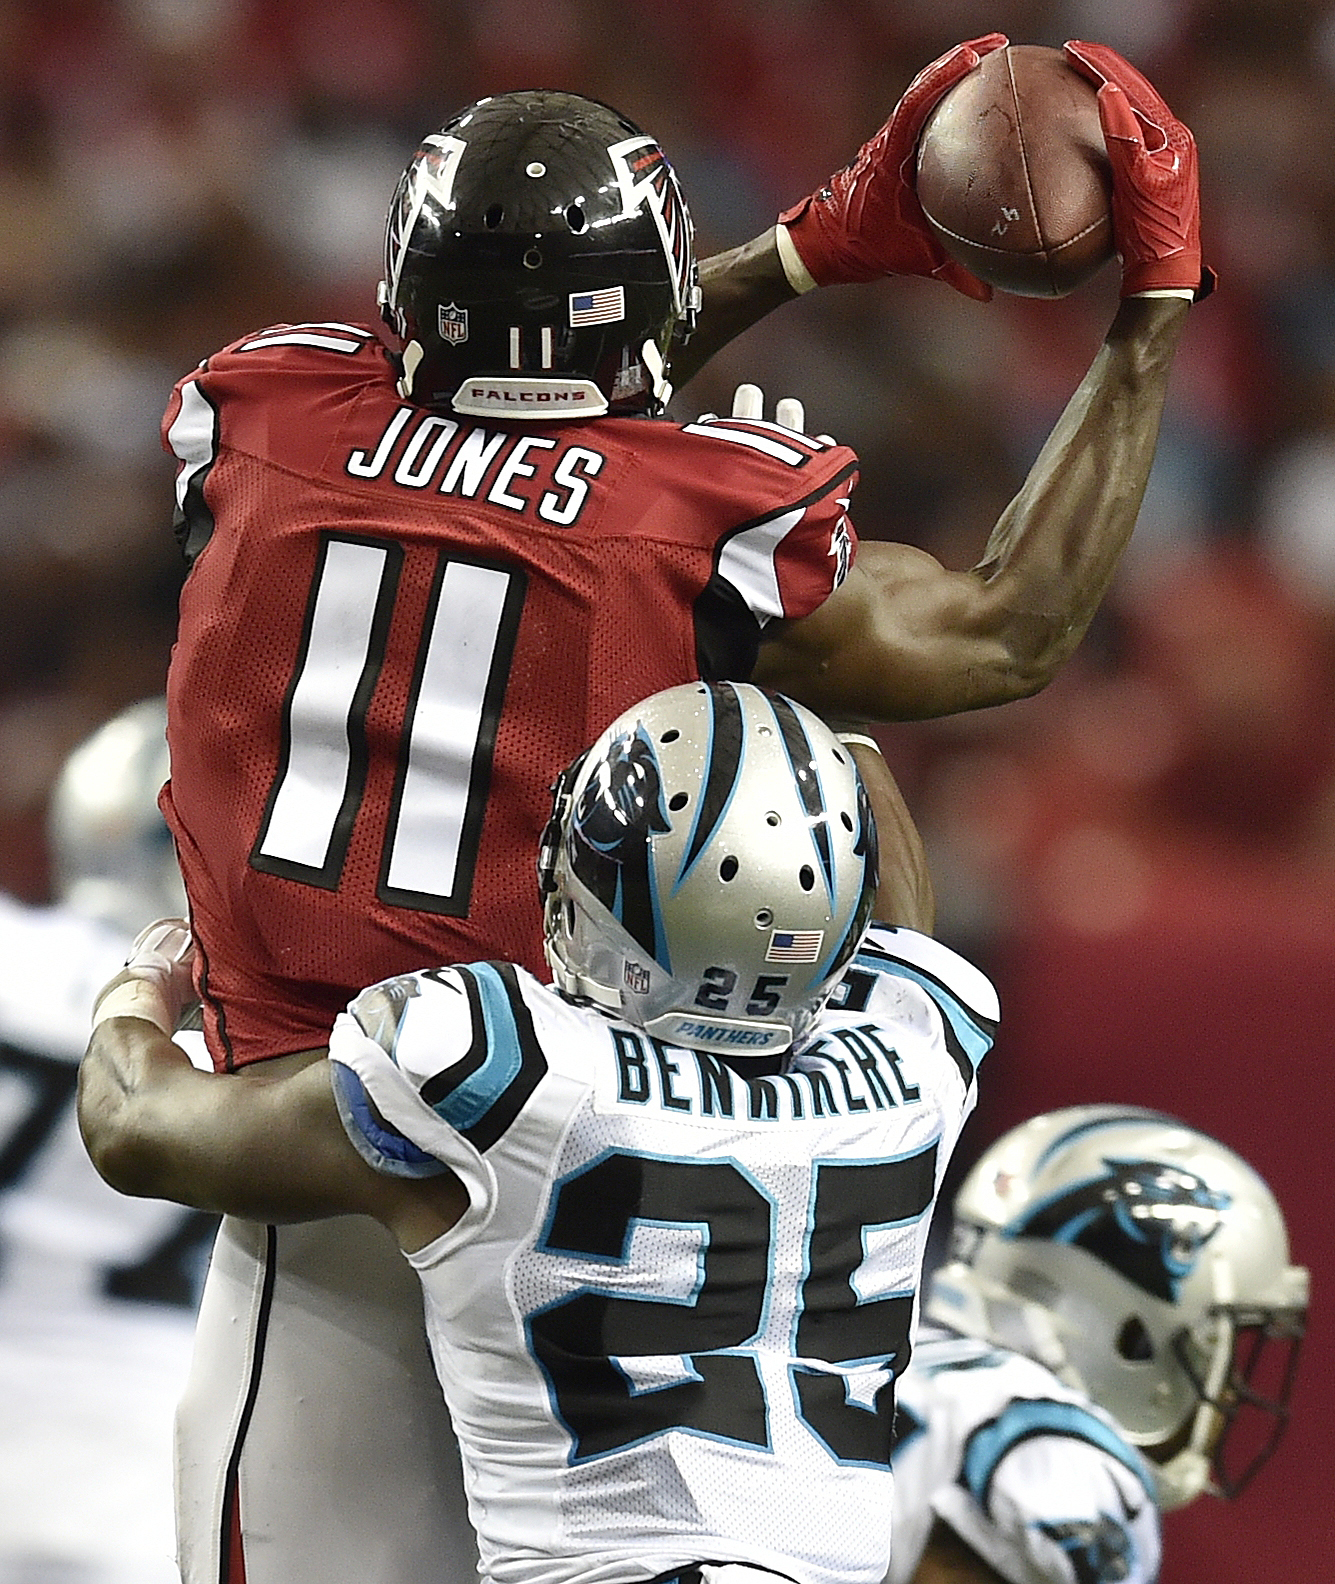 Atlanta Falcons wide receiver Julio Jones (11) makes the catch against Carolina Panthers cornerback Bene' Benwikere (25) during the second half of an NFL football game, Sunday, Oct. 2, 2016, in Atlanta. (AP Photo/Rainier Ehrhardt)